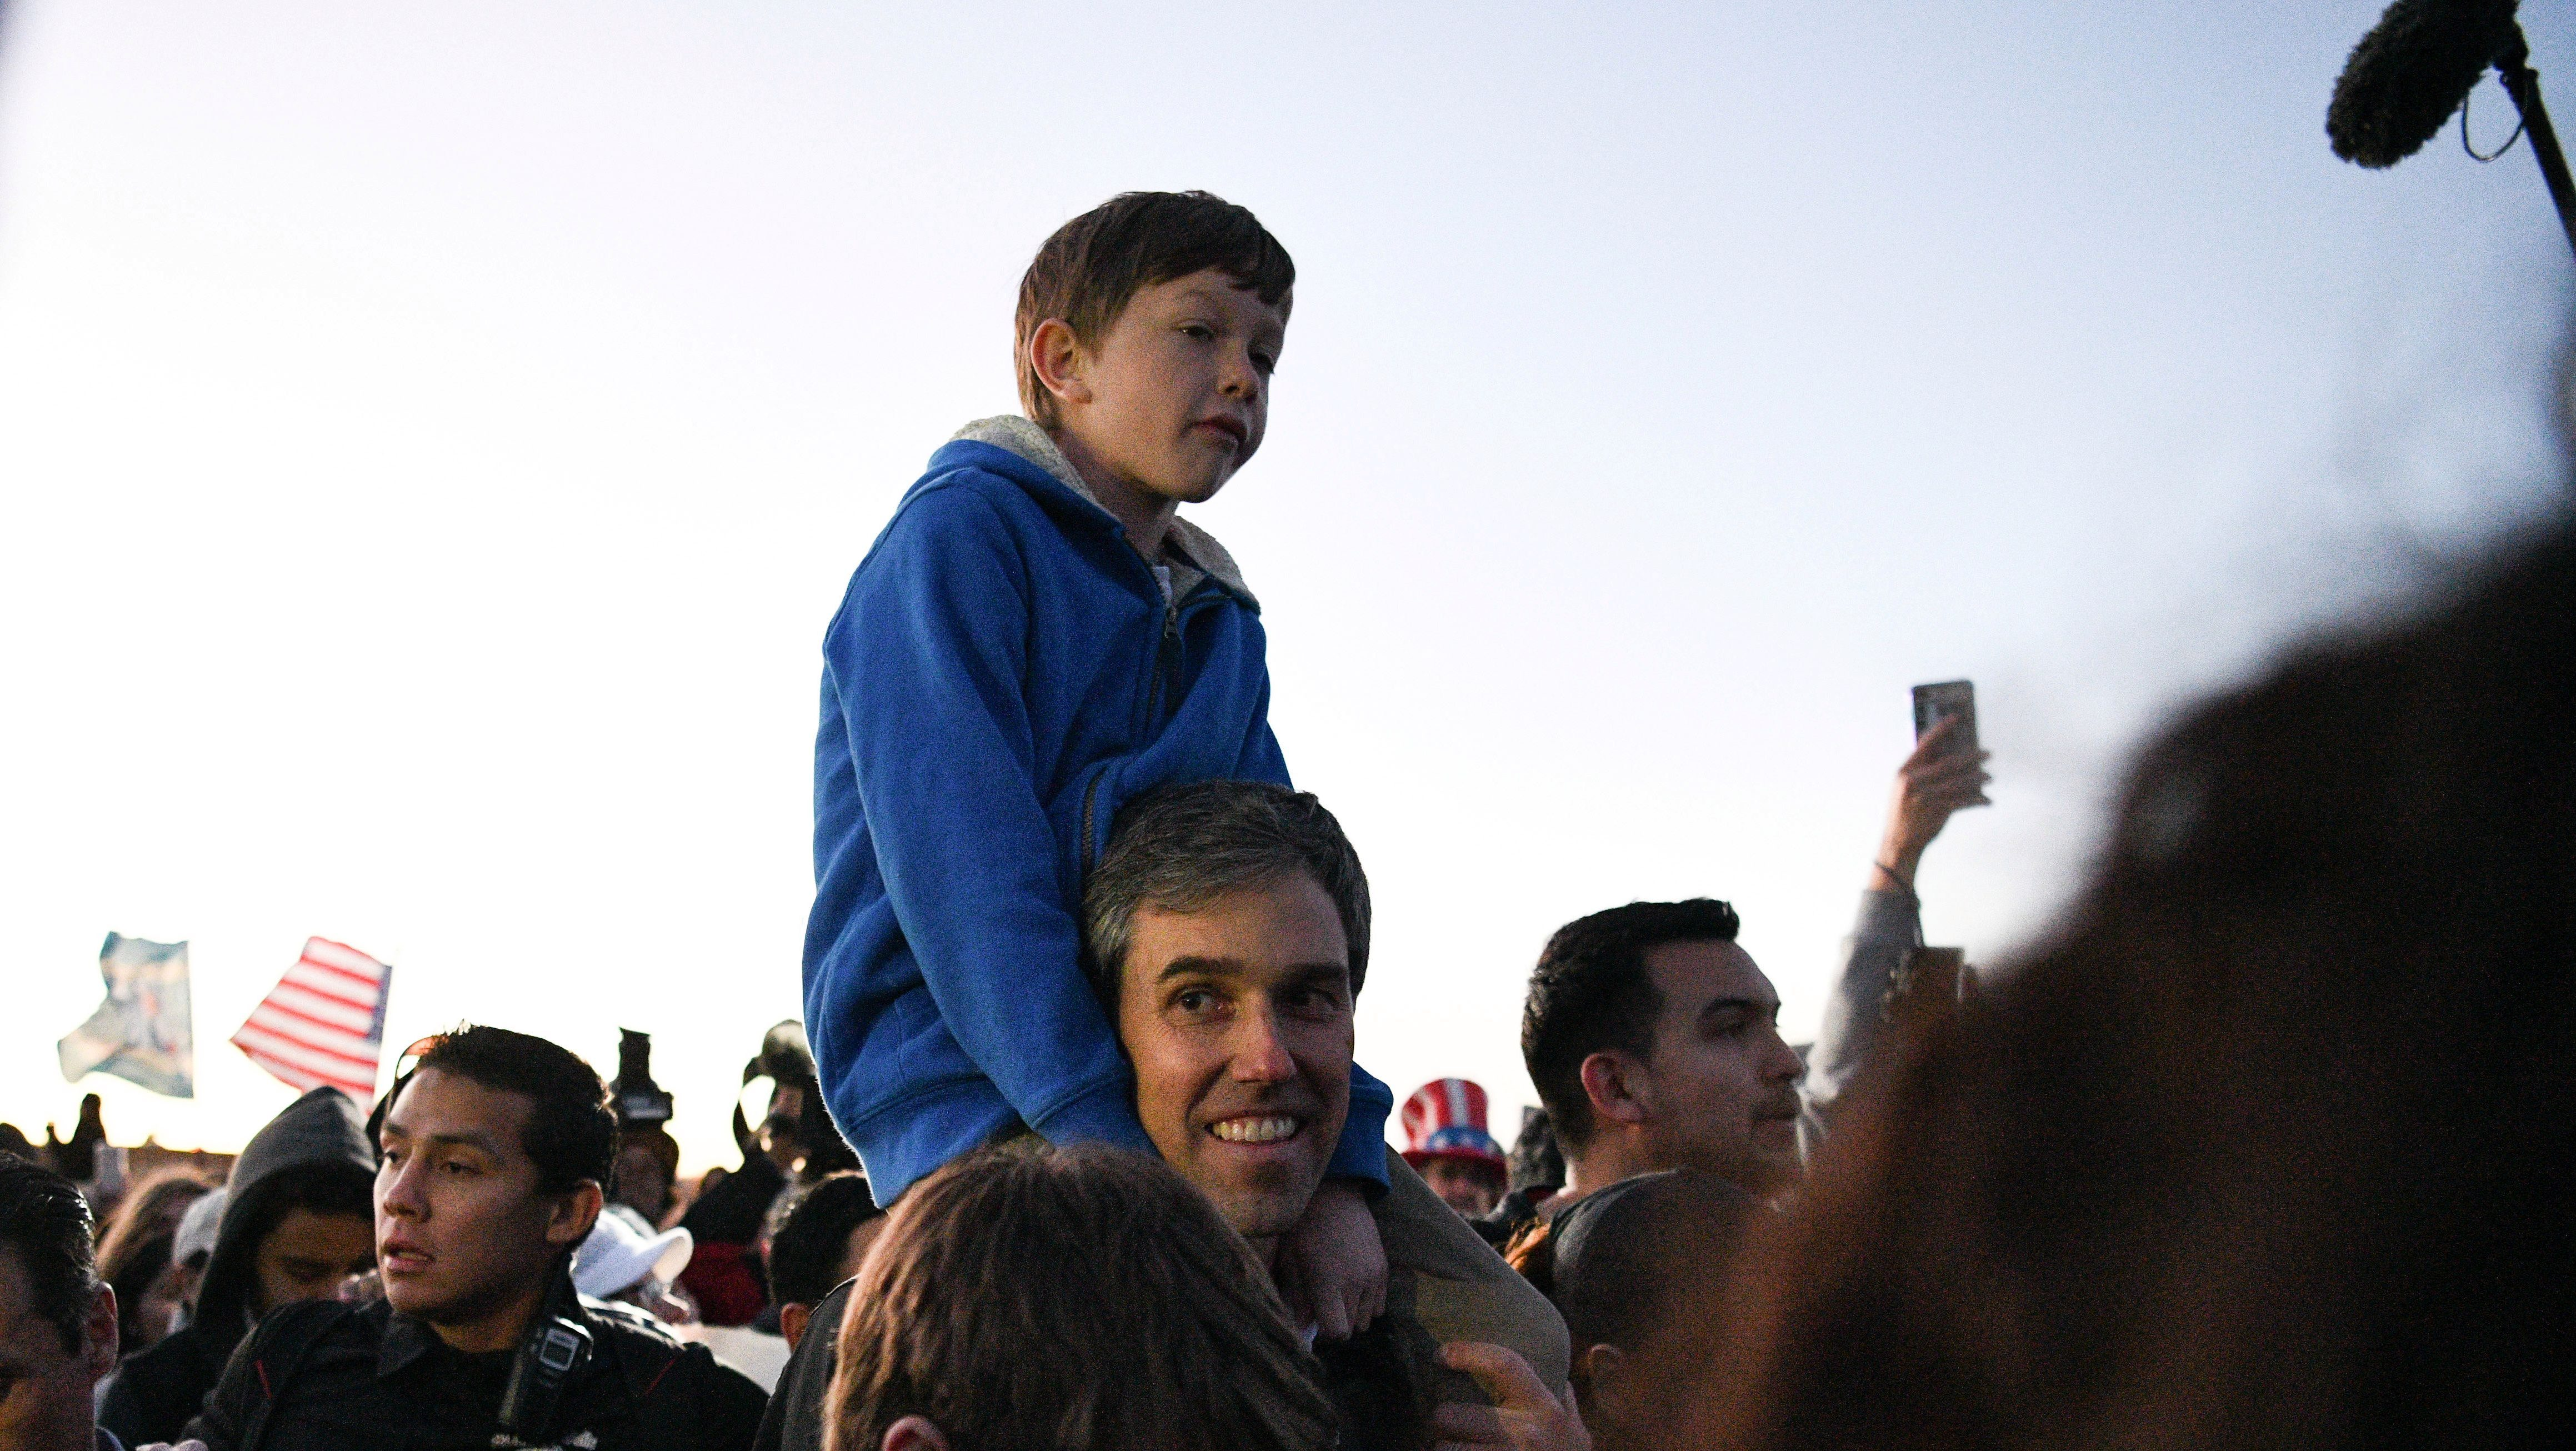 Beto O'Rourke, the Democratic former Texas congressman, participates in an anti-Trump march with his family in El Paso, Texas, U.S., February 11, 2019.